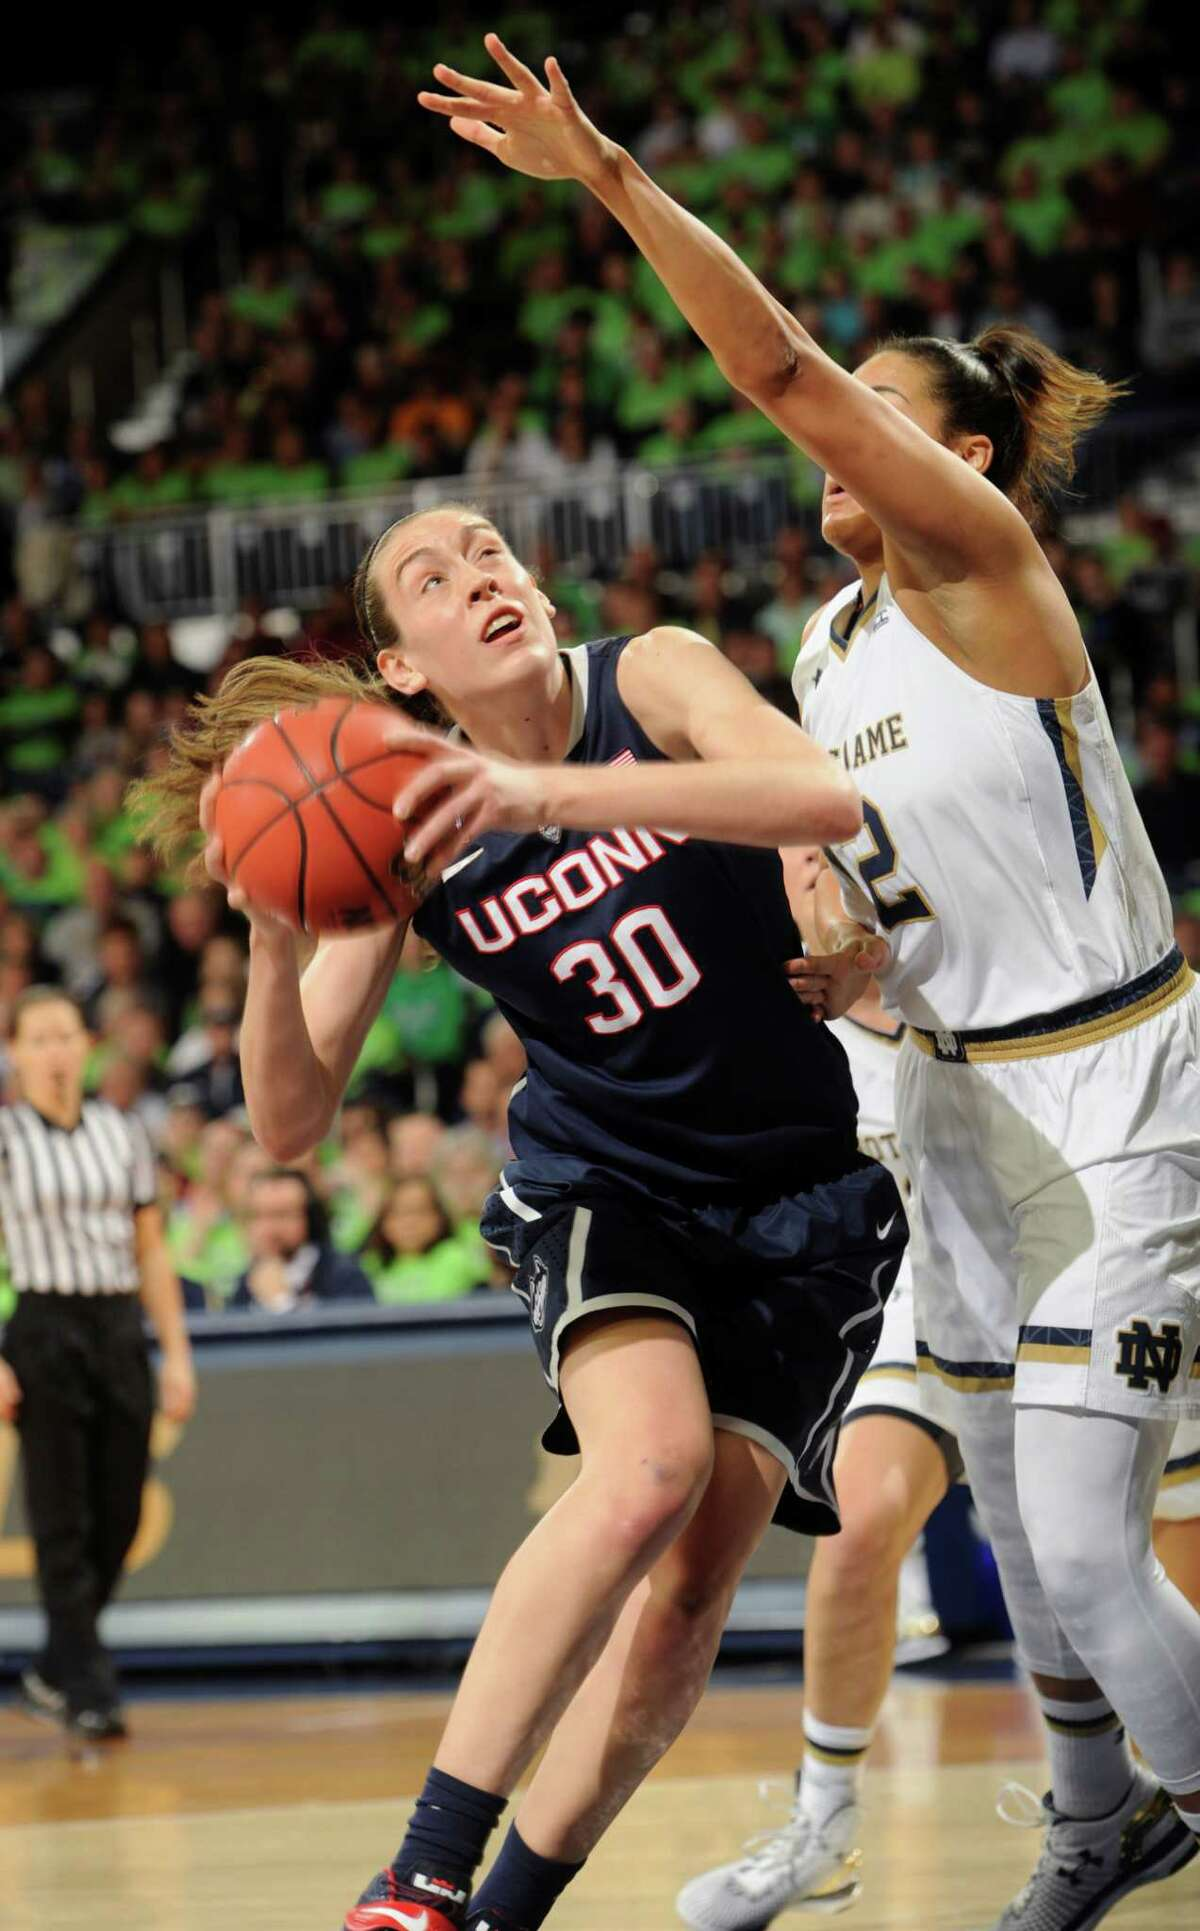 UConn's Brenna Stewart drives the lane against Notre Dame's Taya Reimer during the Huskies' 76-58 win on Saturday in South Bend, Ind.